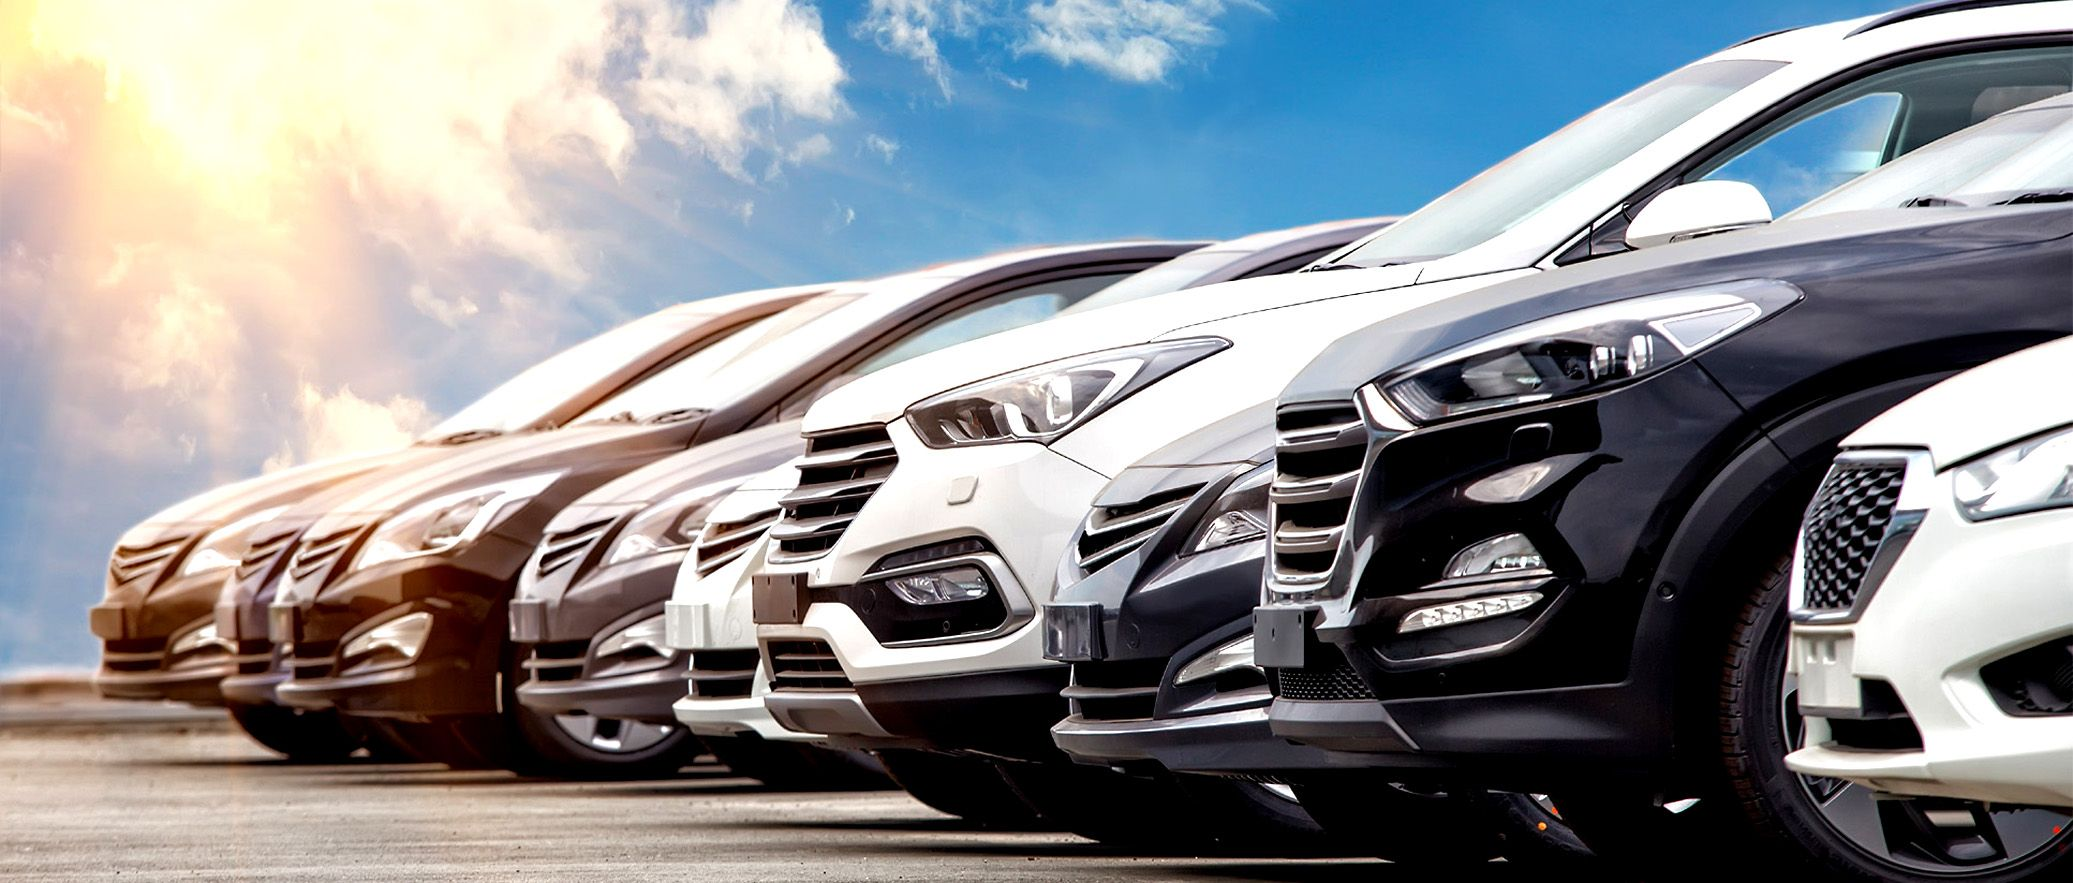 4 Advantages To Sell Car In Dubai Through The Internet Used Cars Car Rental Service Car Advertising